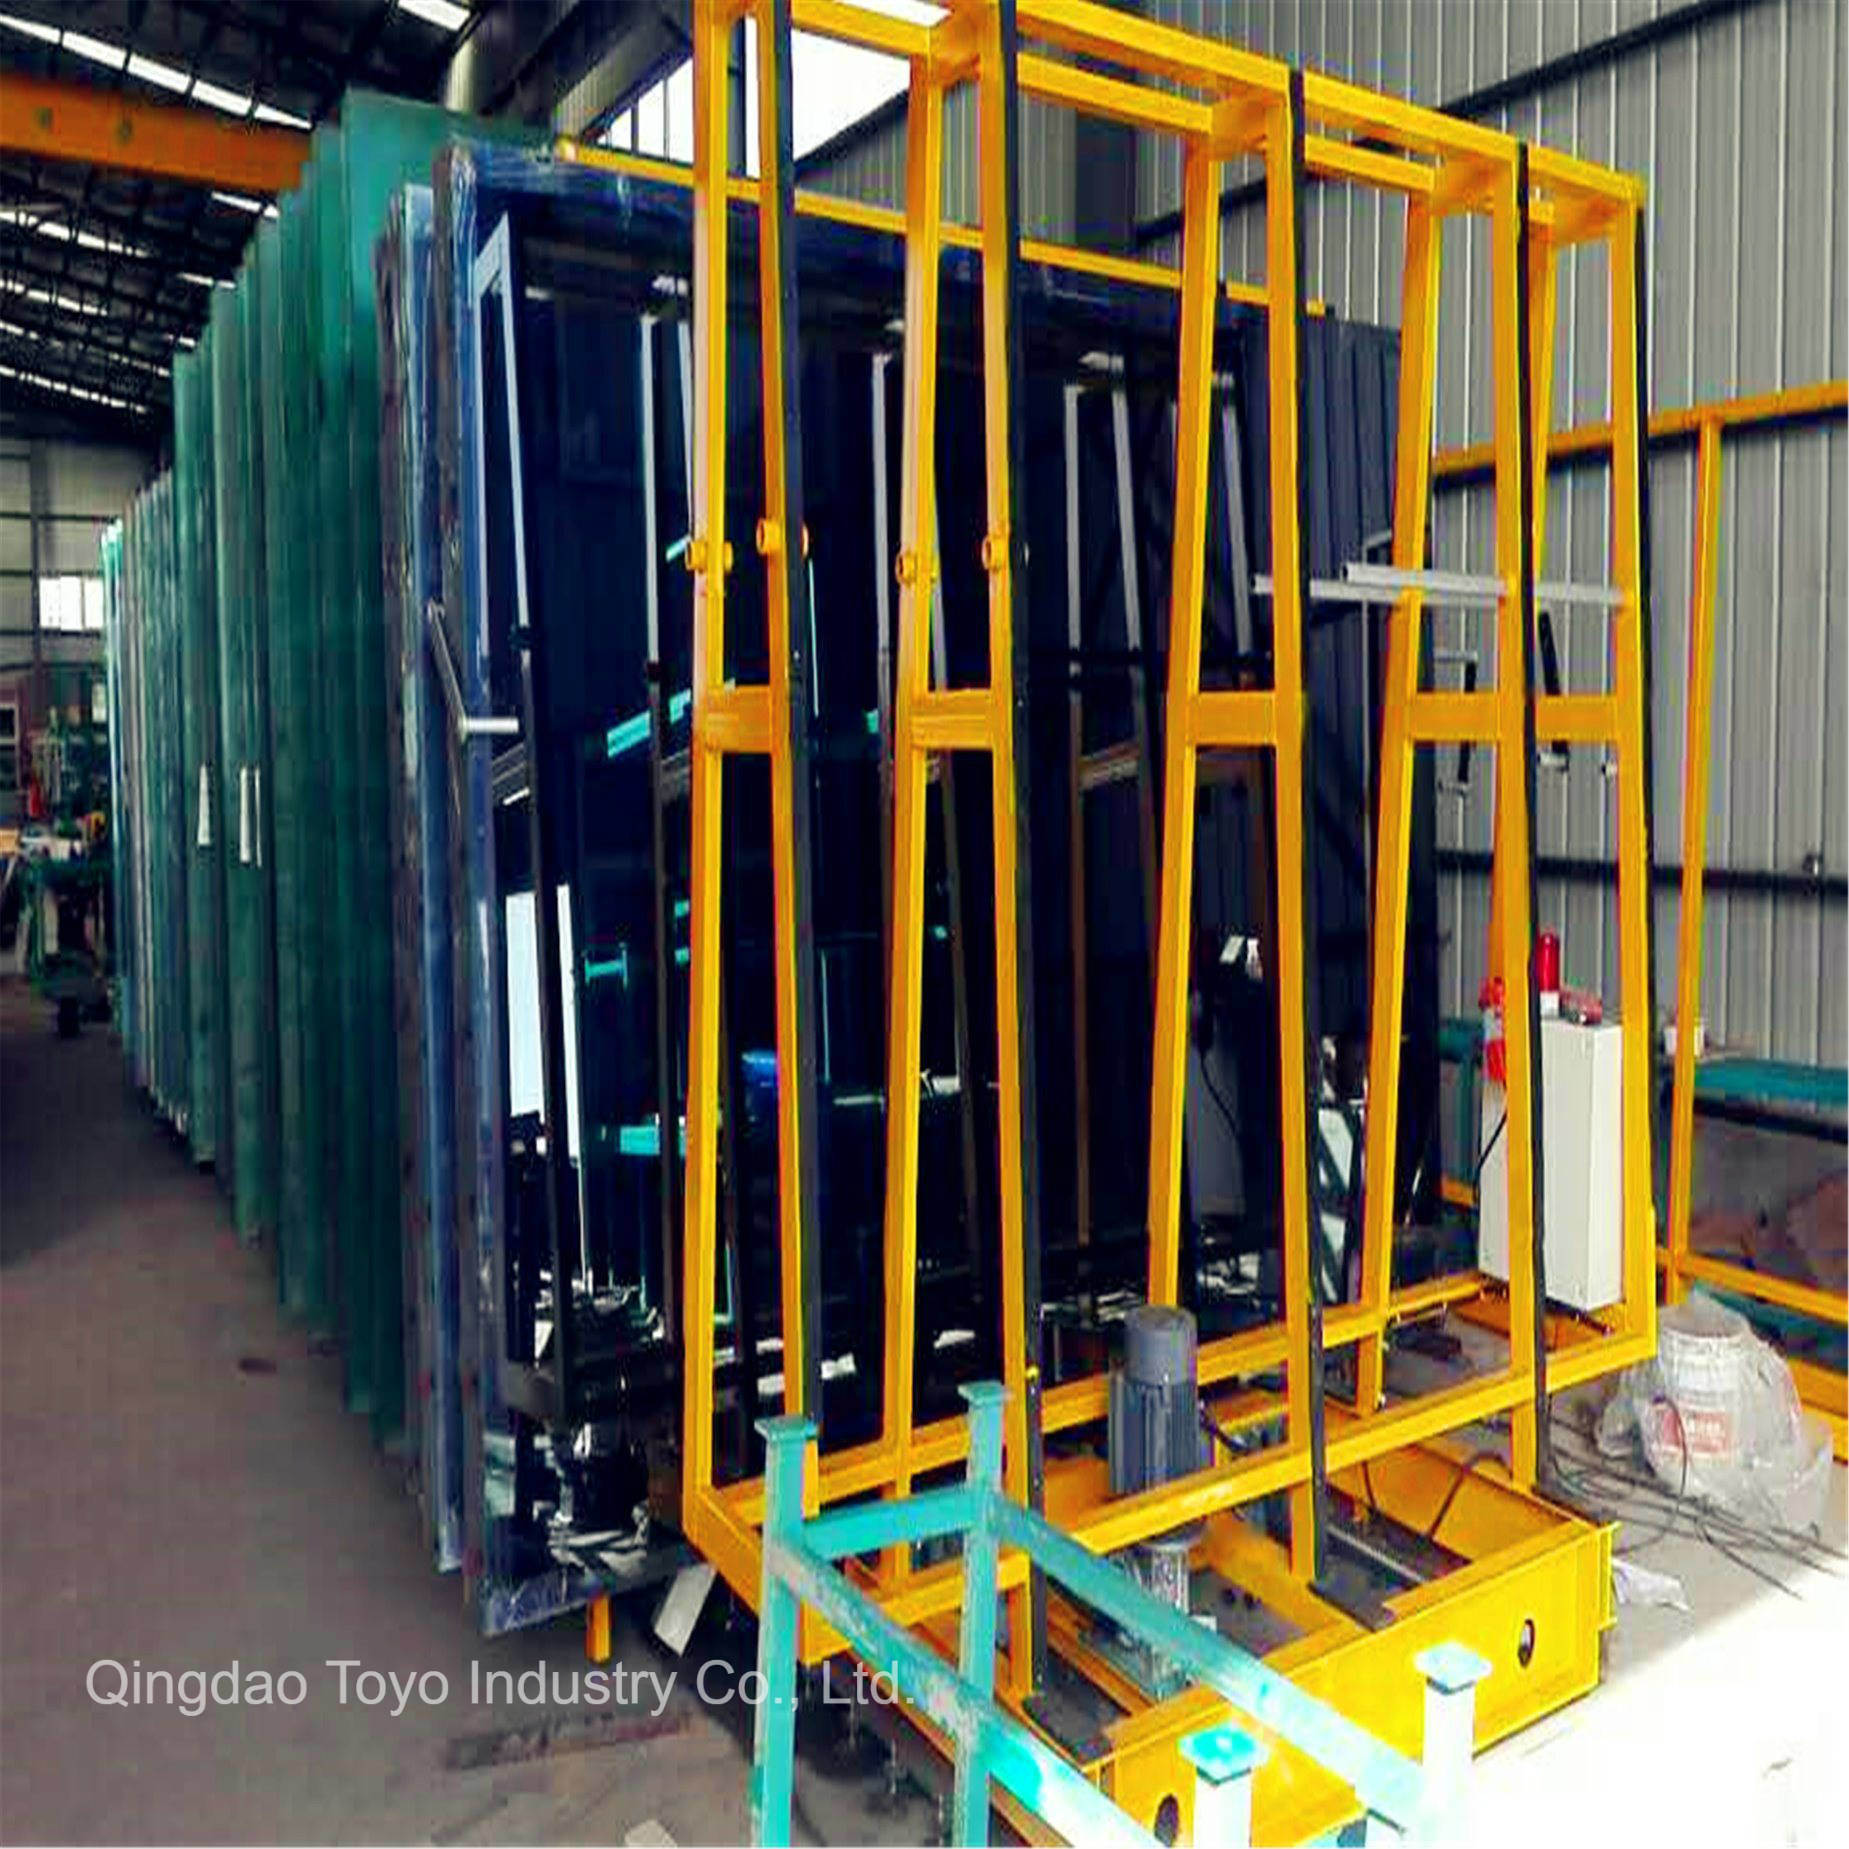 Charmant Removable Storage Glass Shelf Specification Storage Rack Metal Transport  Rack For Glass Factory